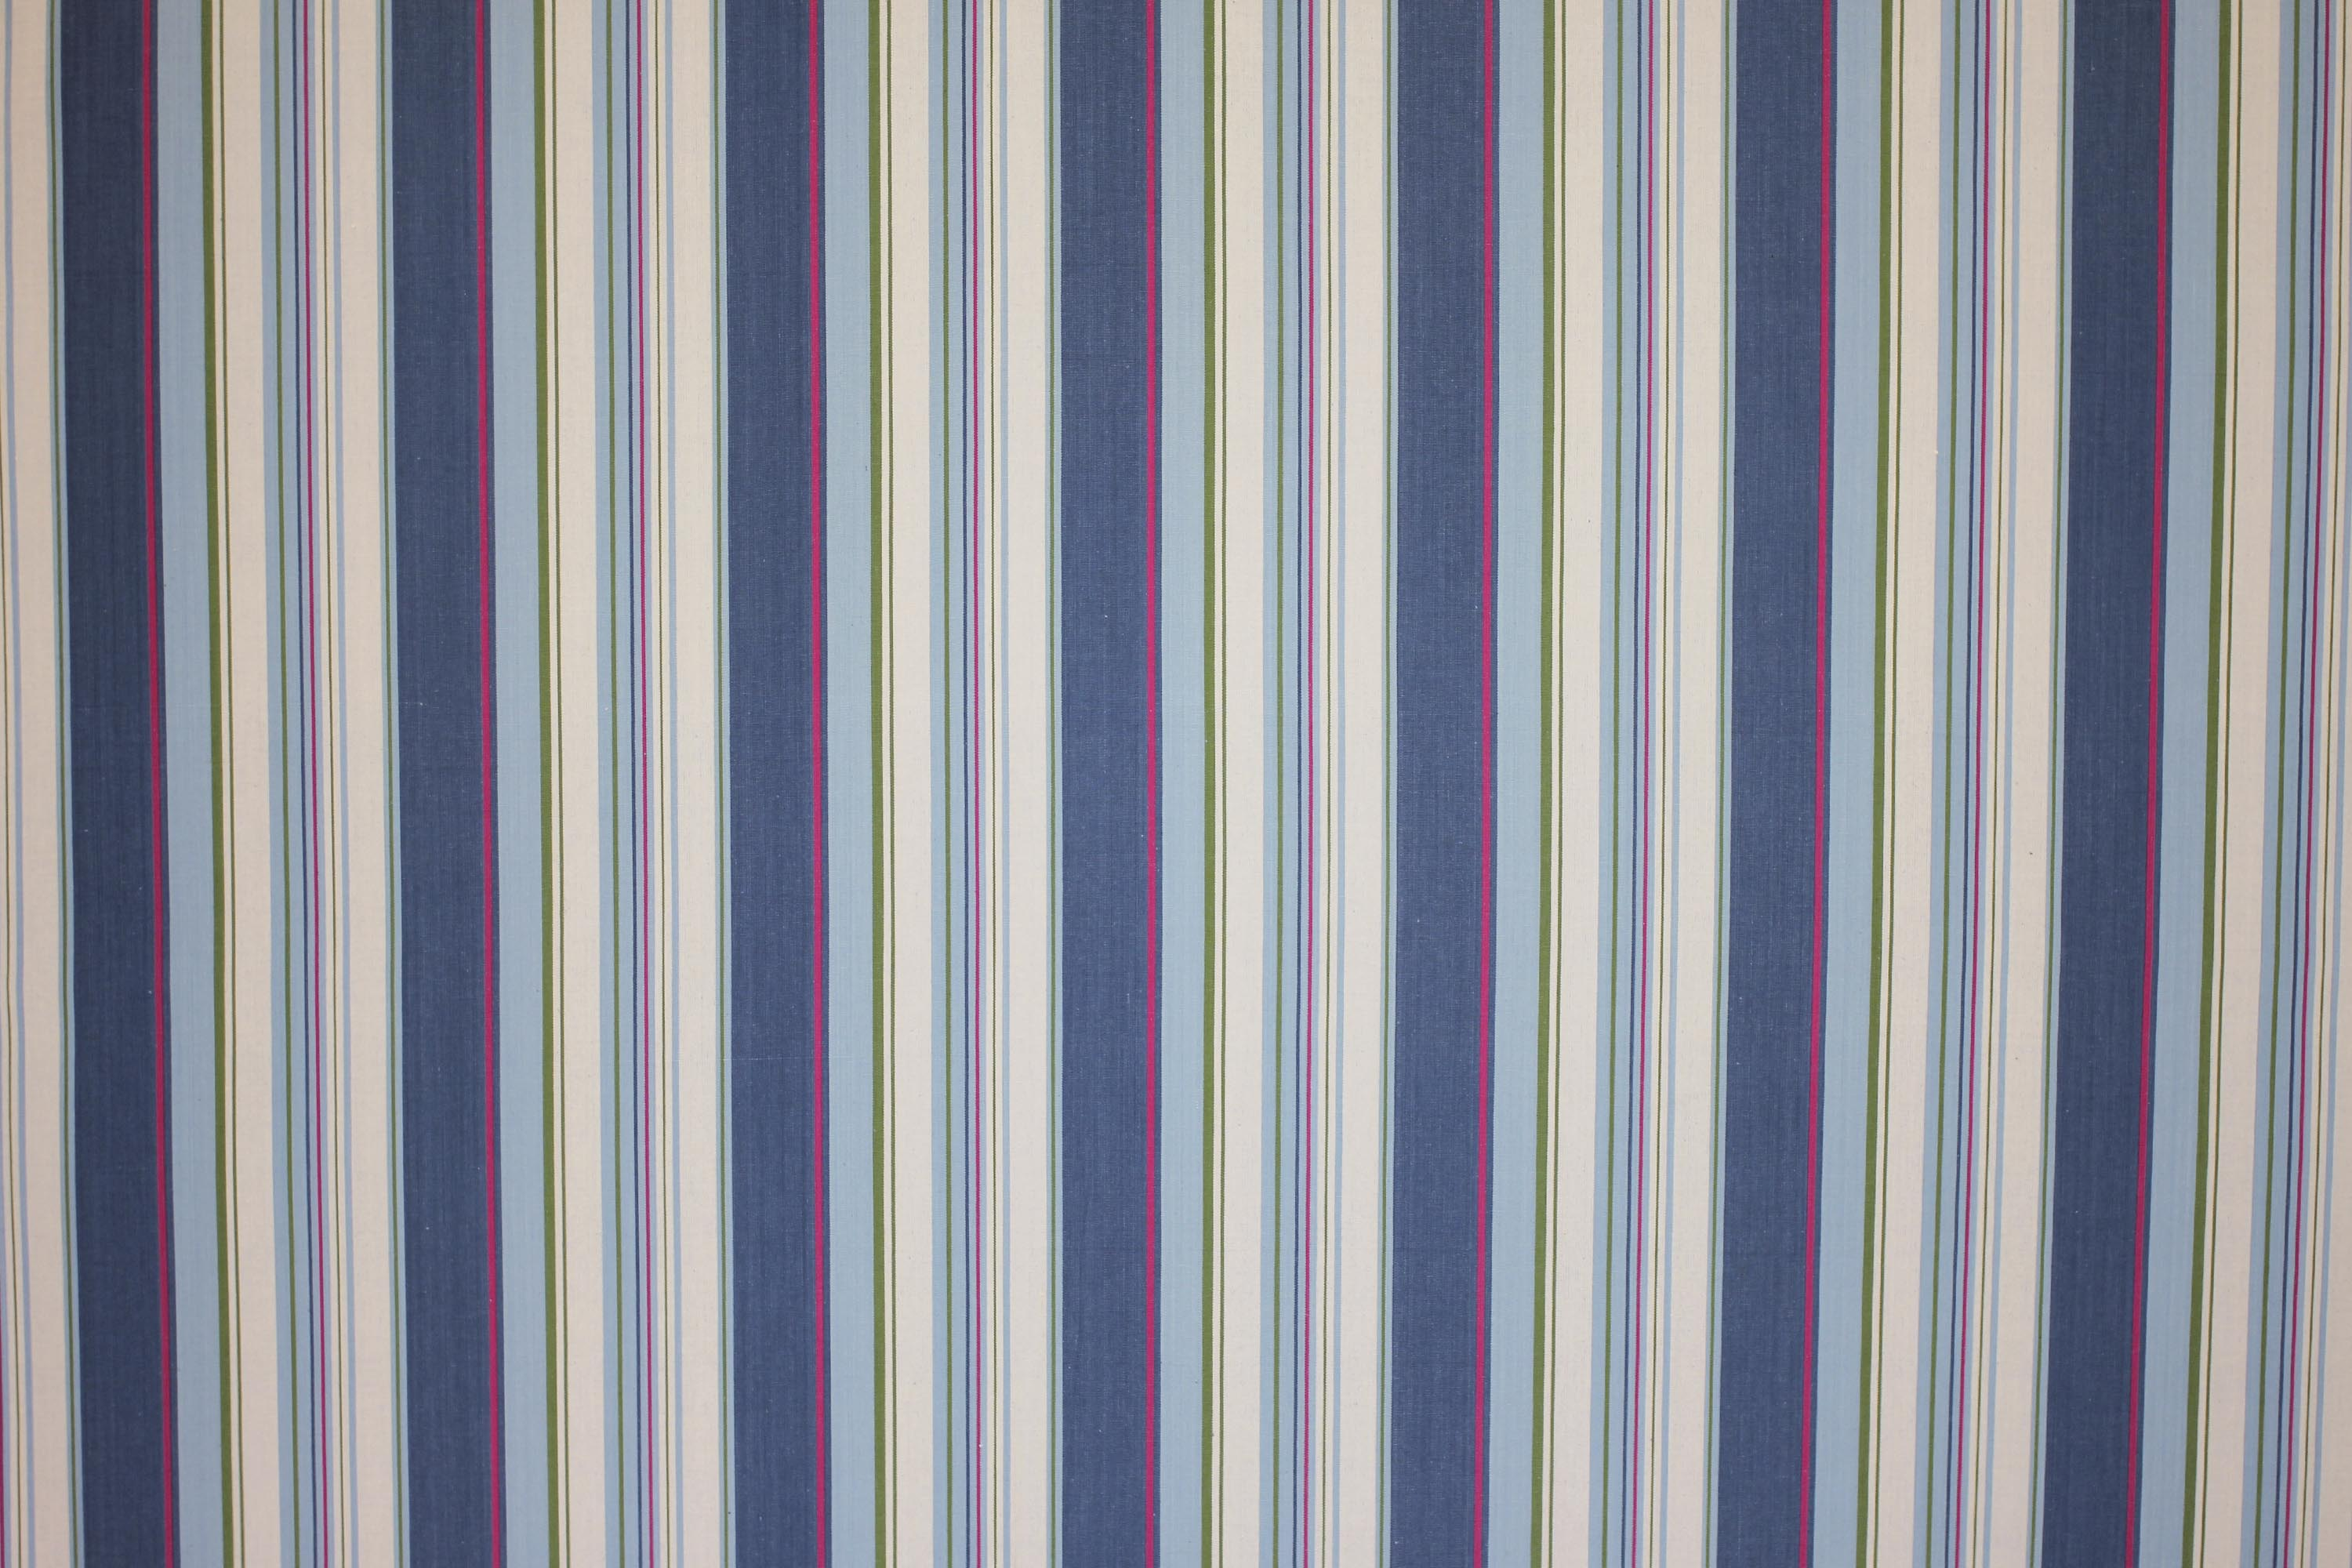 Petrol Blue Striped Oilcloth Fabrics | Wipeable Stripe Fabrics Petrol Blue  Pale Blue  Cream  Stripes